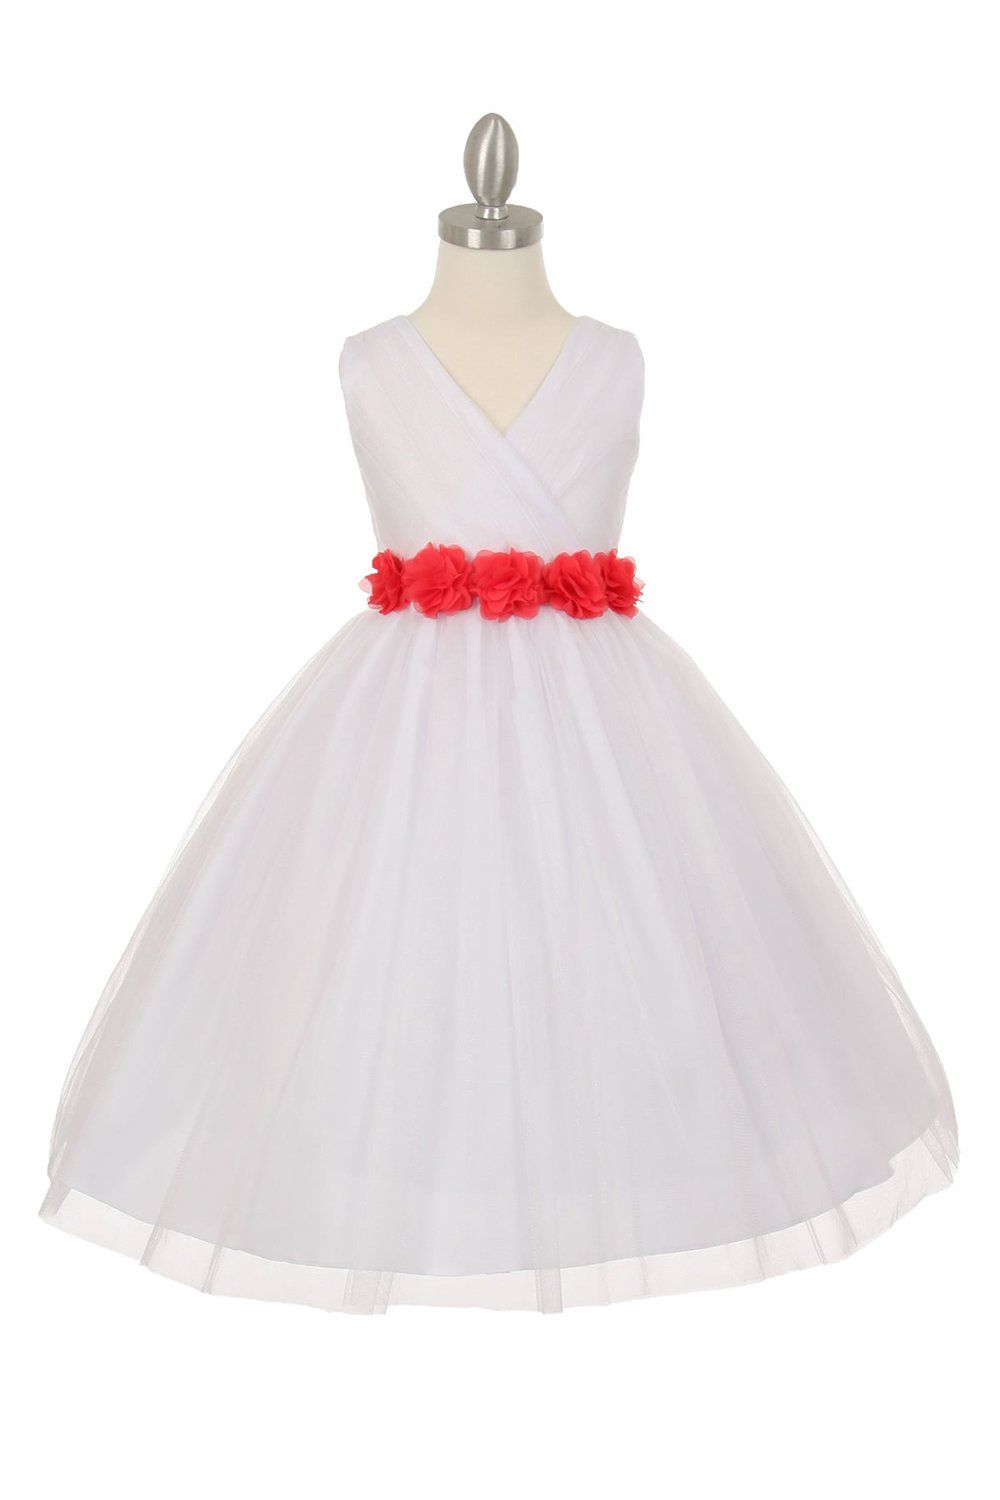 Whitecoral Tulle V Neck With Removable Floral Sash Flower Girl